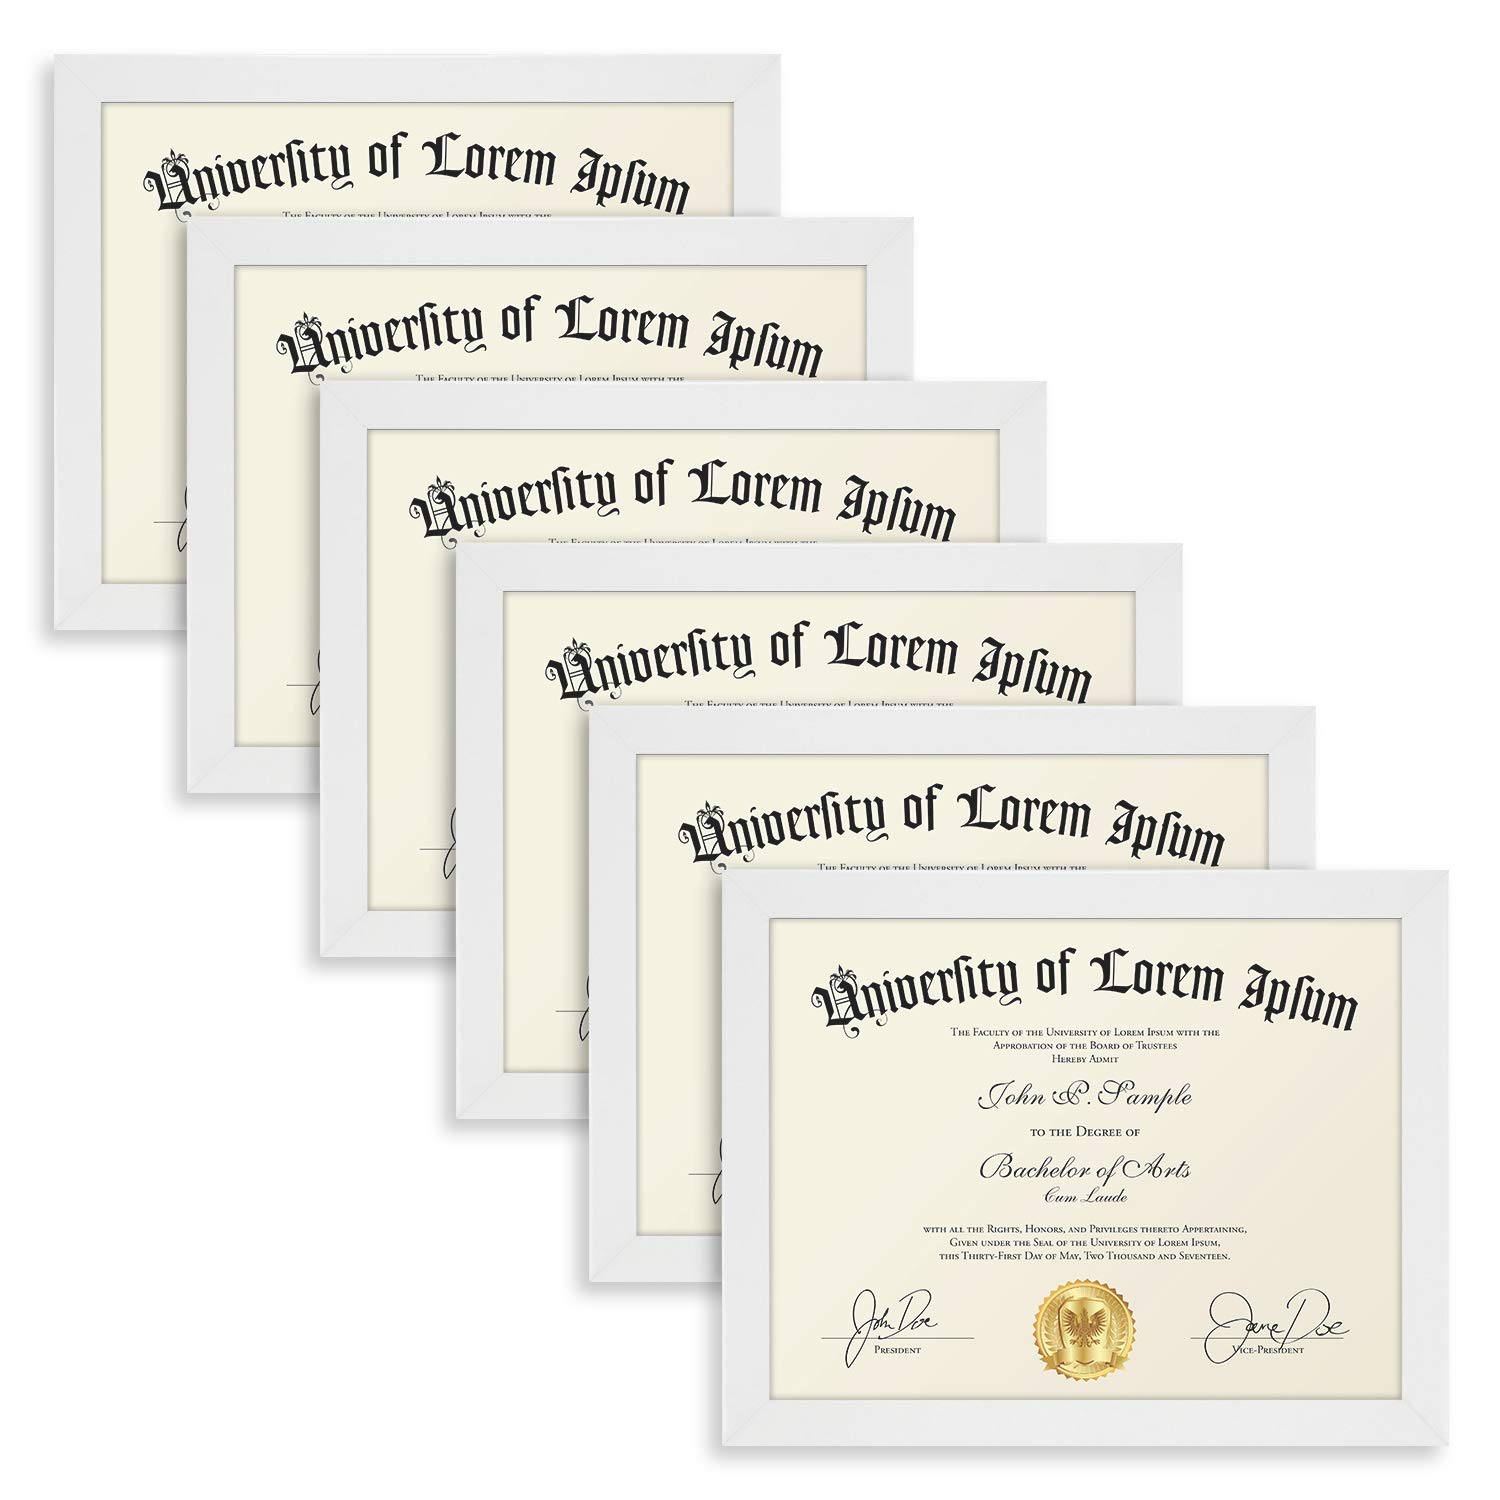 Icona Bay 8.5x11 Diploma Frame (6 Pack, White), White Sturdy Wood Composite Certificate Frame, Document Frame Bulk, Wall or Table Mount, Set of 6 Exclusives Collection